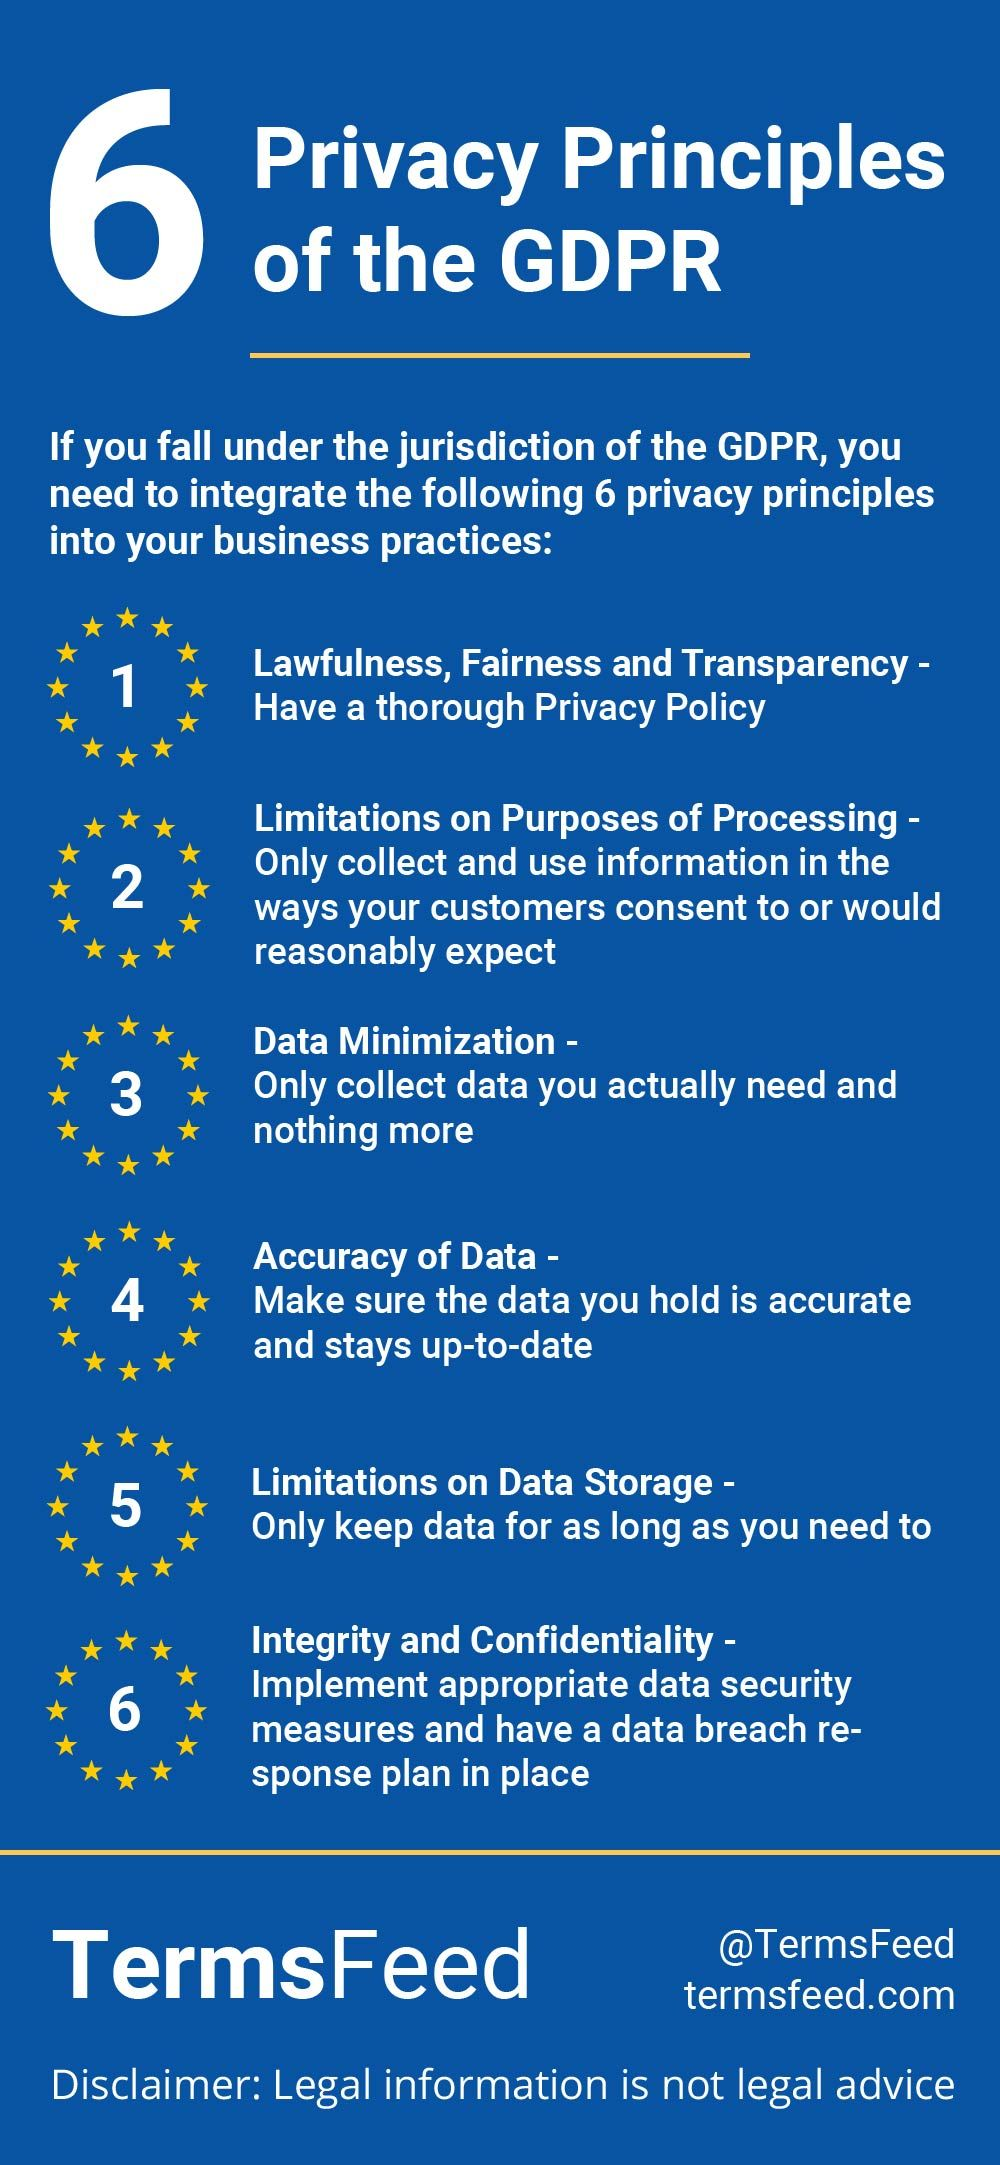 6 Privacy Principles Of The Gdpr Termsfeed In 2020 Principles General Data Protection Regulation Business Practices